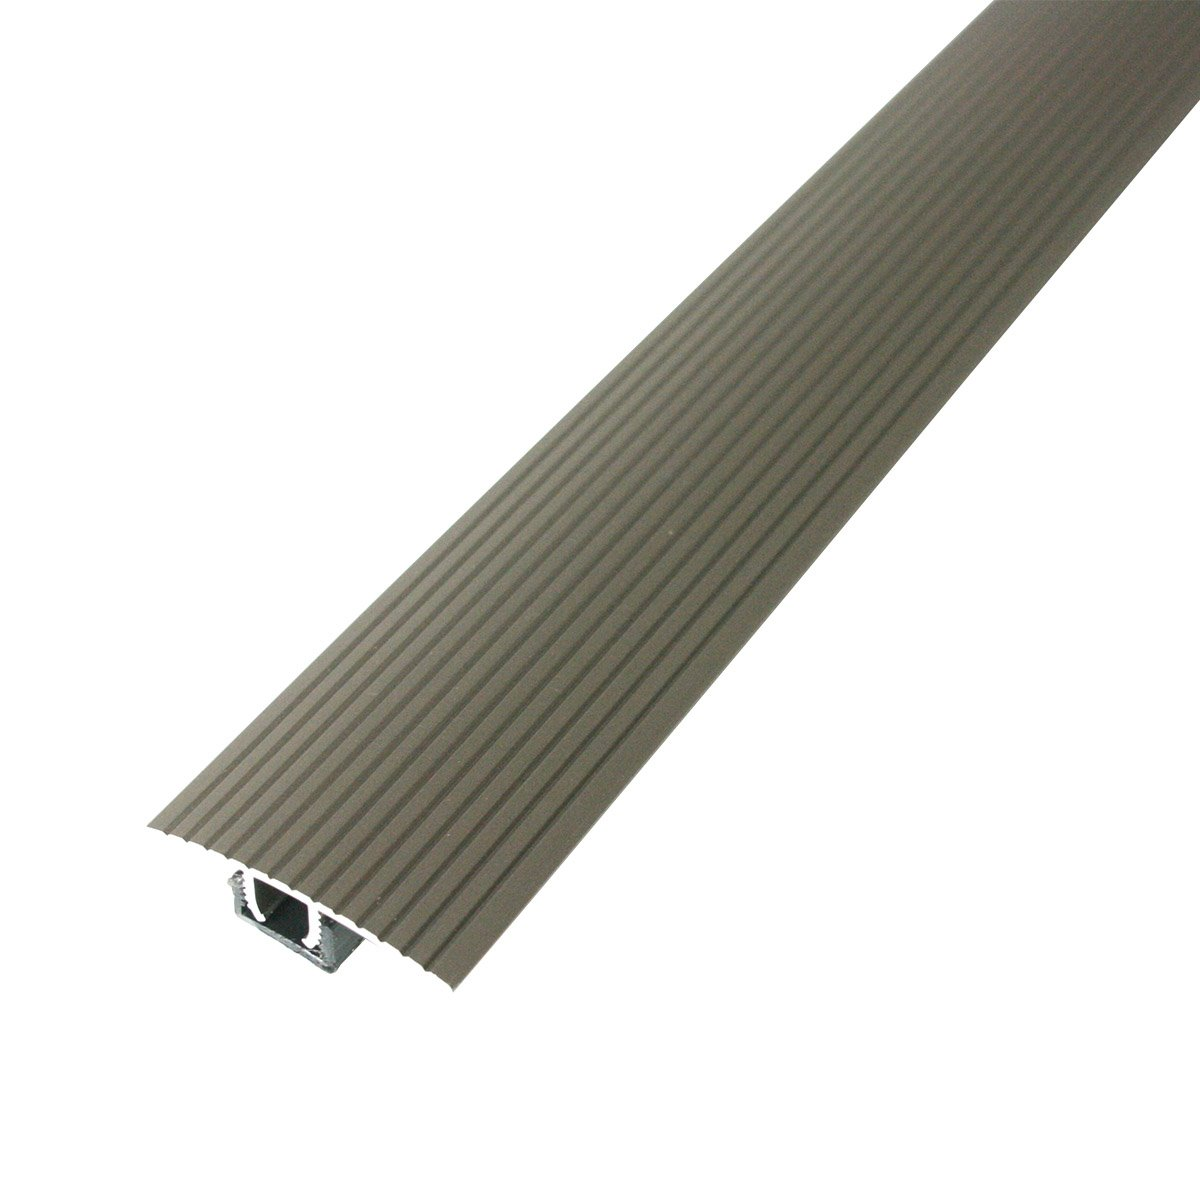 M-D Building Products Cinch T-Molding w/SnapTrack (Fluted) 36'' Satin Nickel Satin Nickel